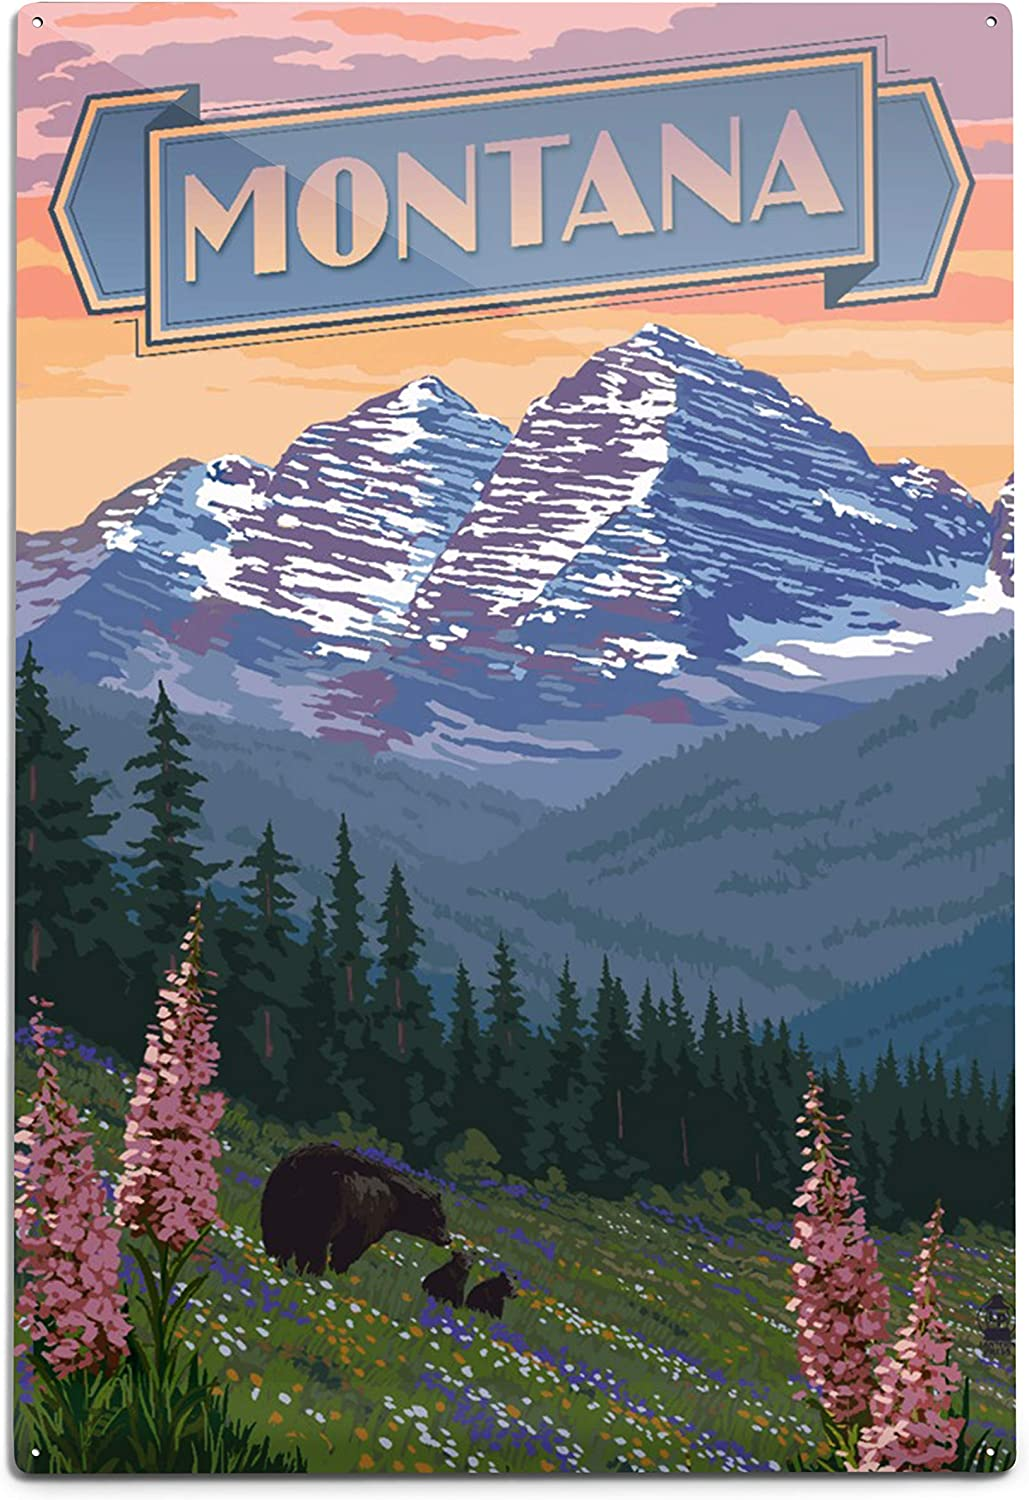 Max 58% OFF Montana Banner Bear and Spring 12x18 Flowers 94050 Wa Aluminum Super Special SALE held